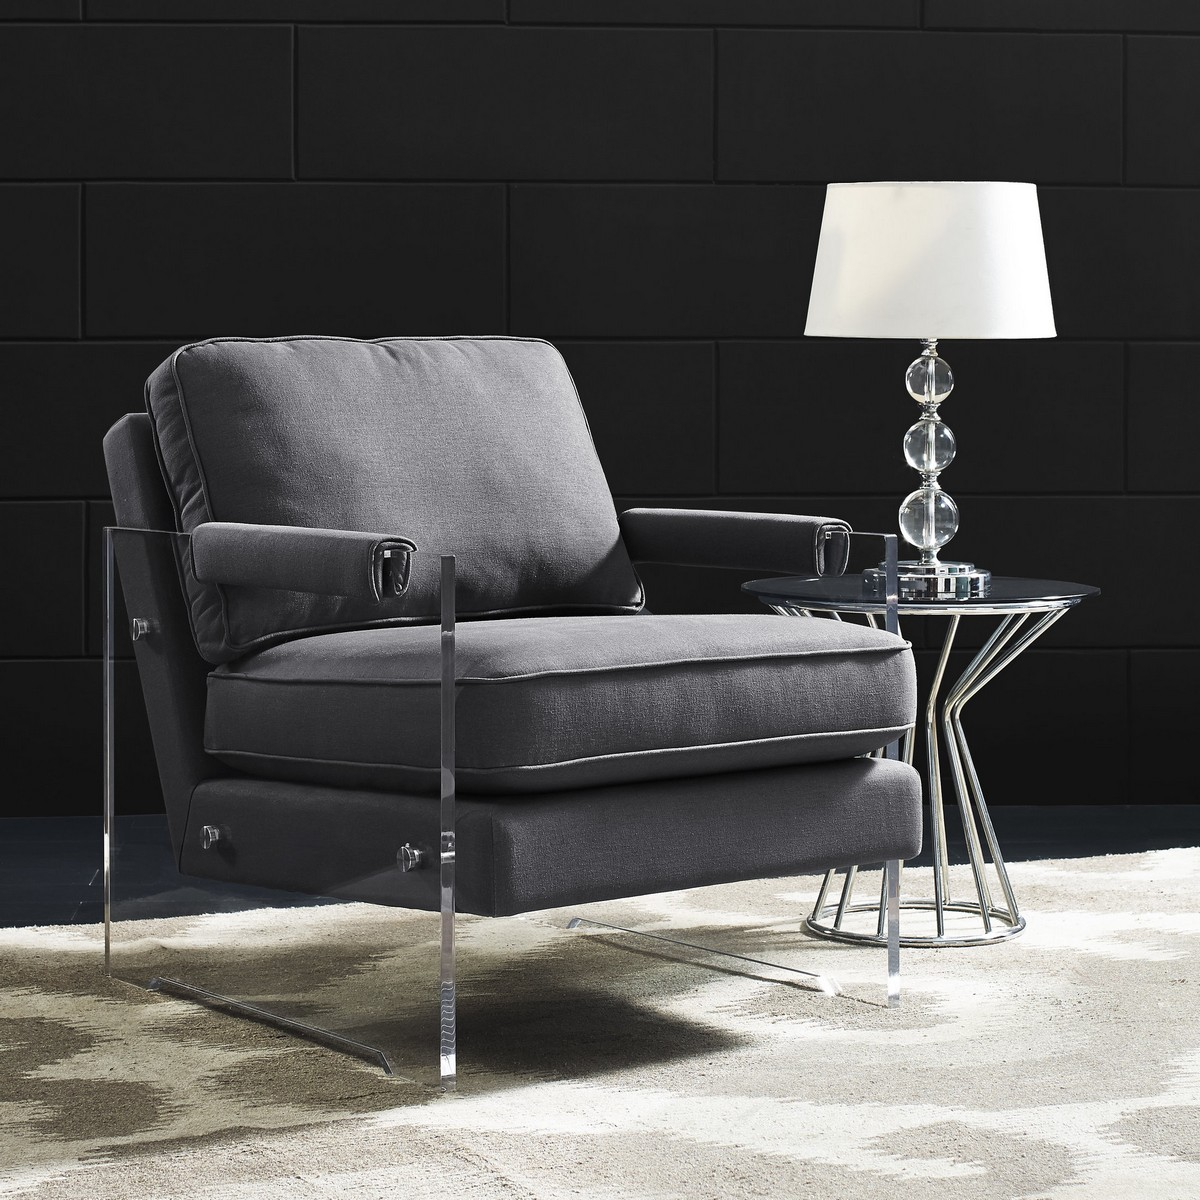 Tov Furniture Serena Floating Lucite Chair A71 At